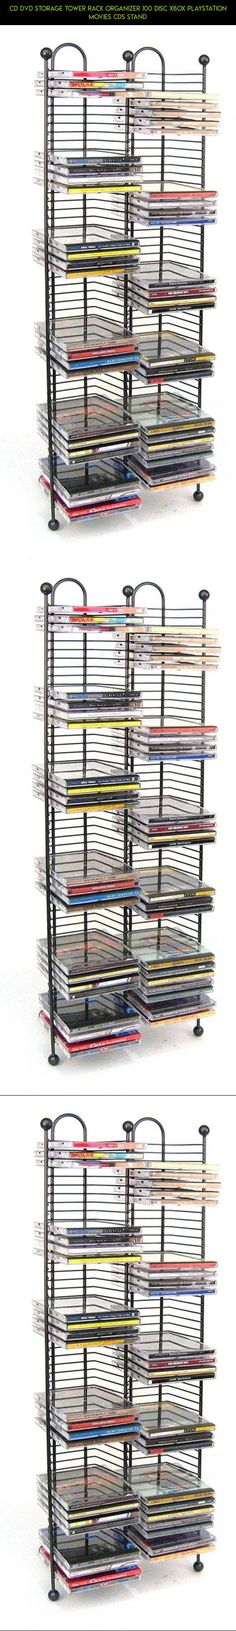 CD DVD Storage Tower Rack Organizer 100 Disc Xbox Playstation Movies CDs Stand #fpv #tech #kit #parts #racing #gadgets #products #plans #technology #storage #camera #drone #shopping #xbox